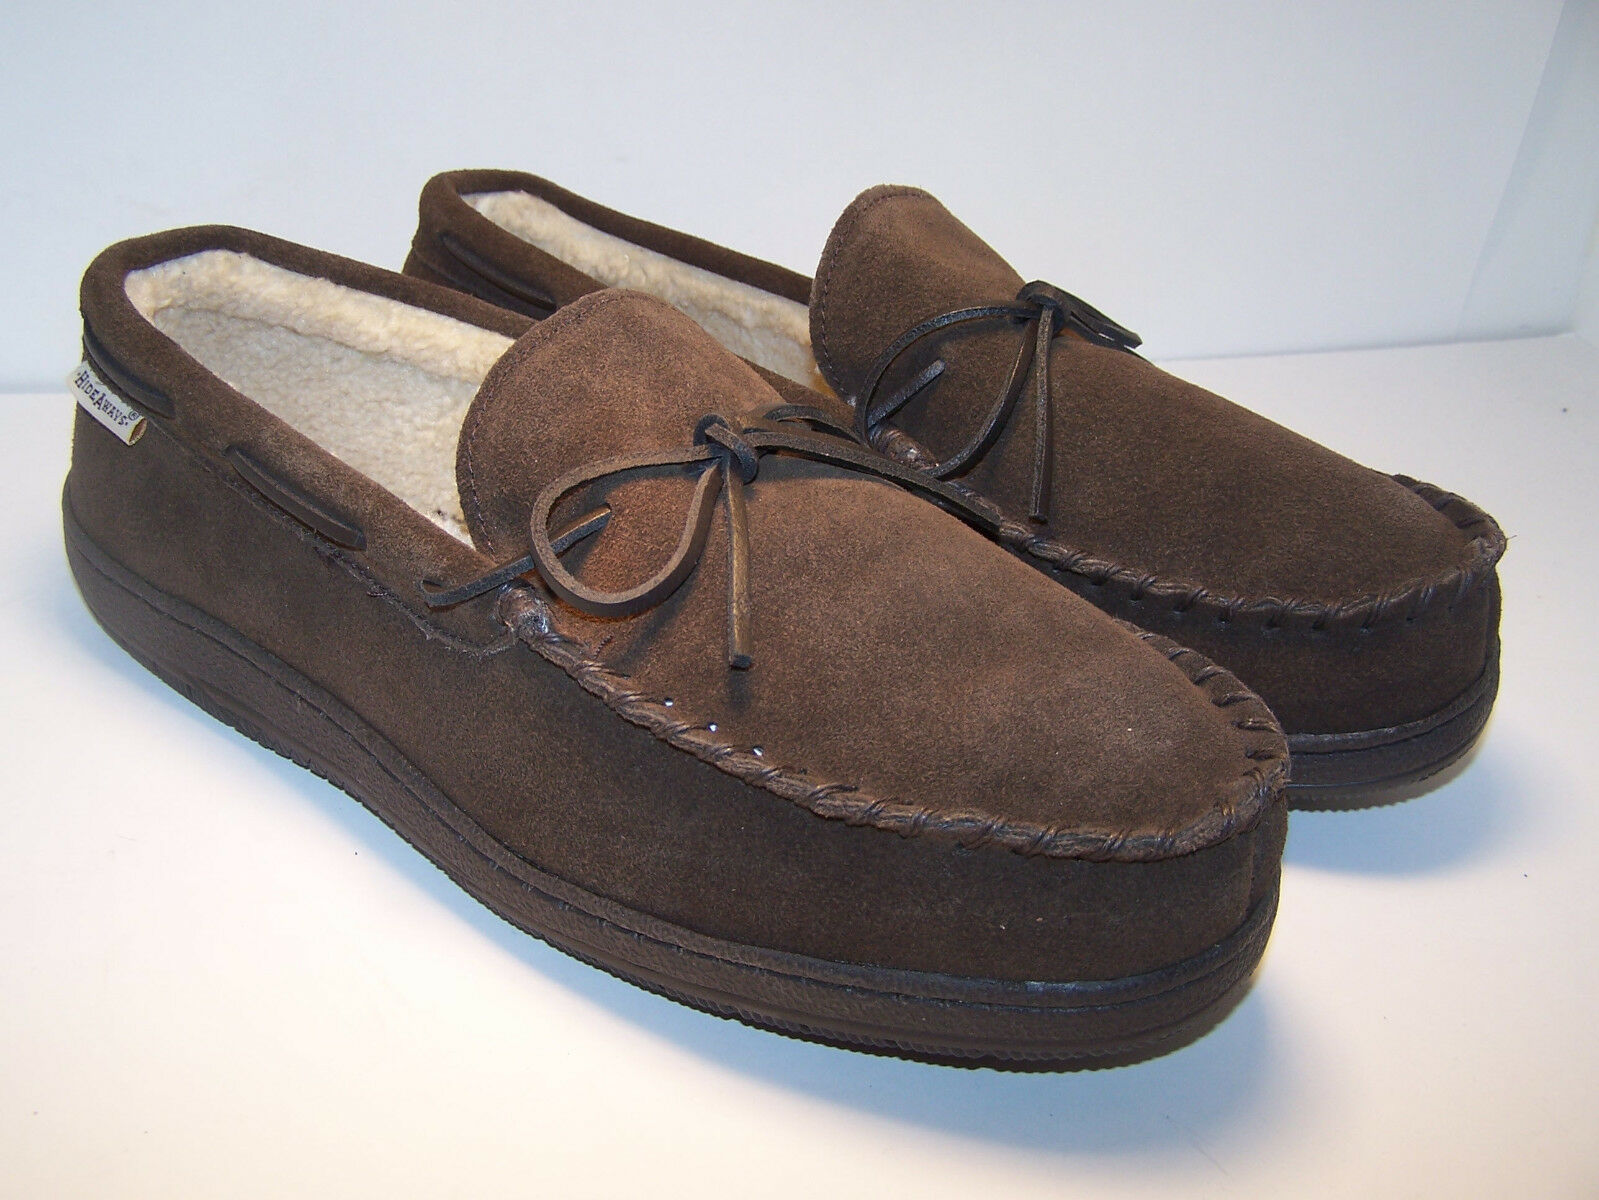 HIDEAWAYS Morgan L.B. Indoor   Outdoor Slippers Men's shoes Suede MOCCASIN NEW